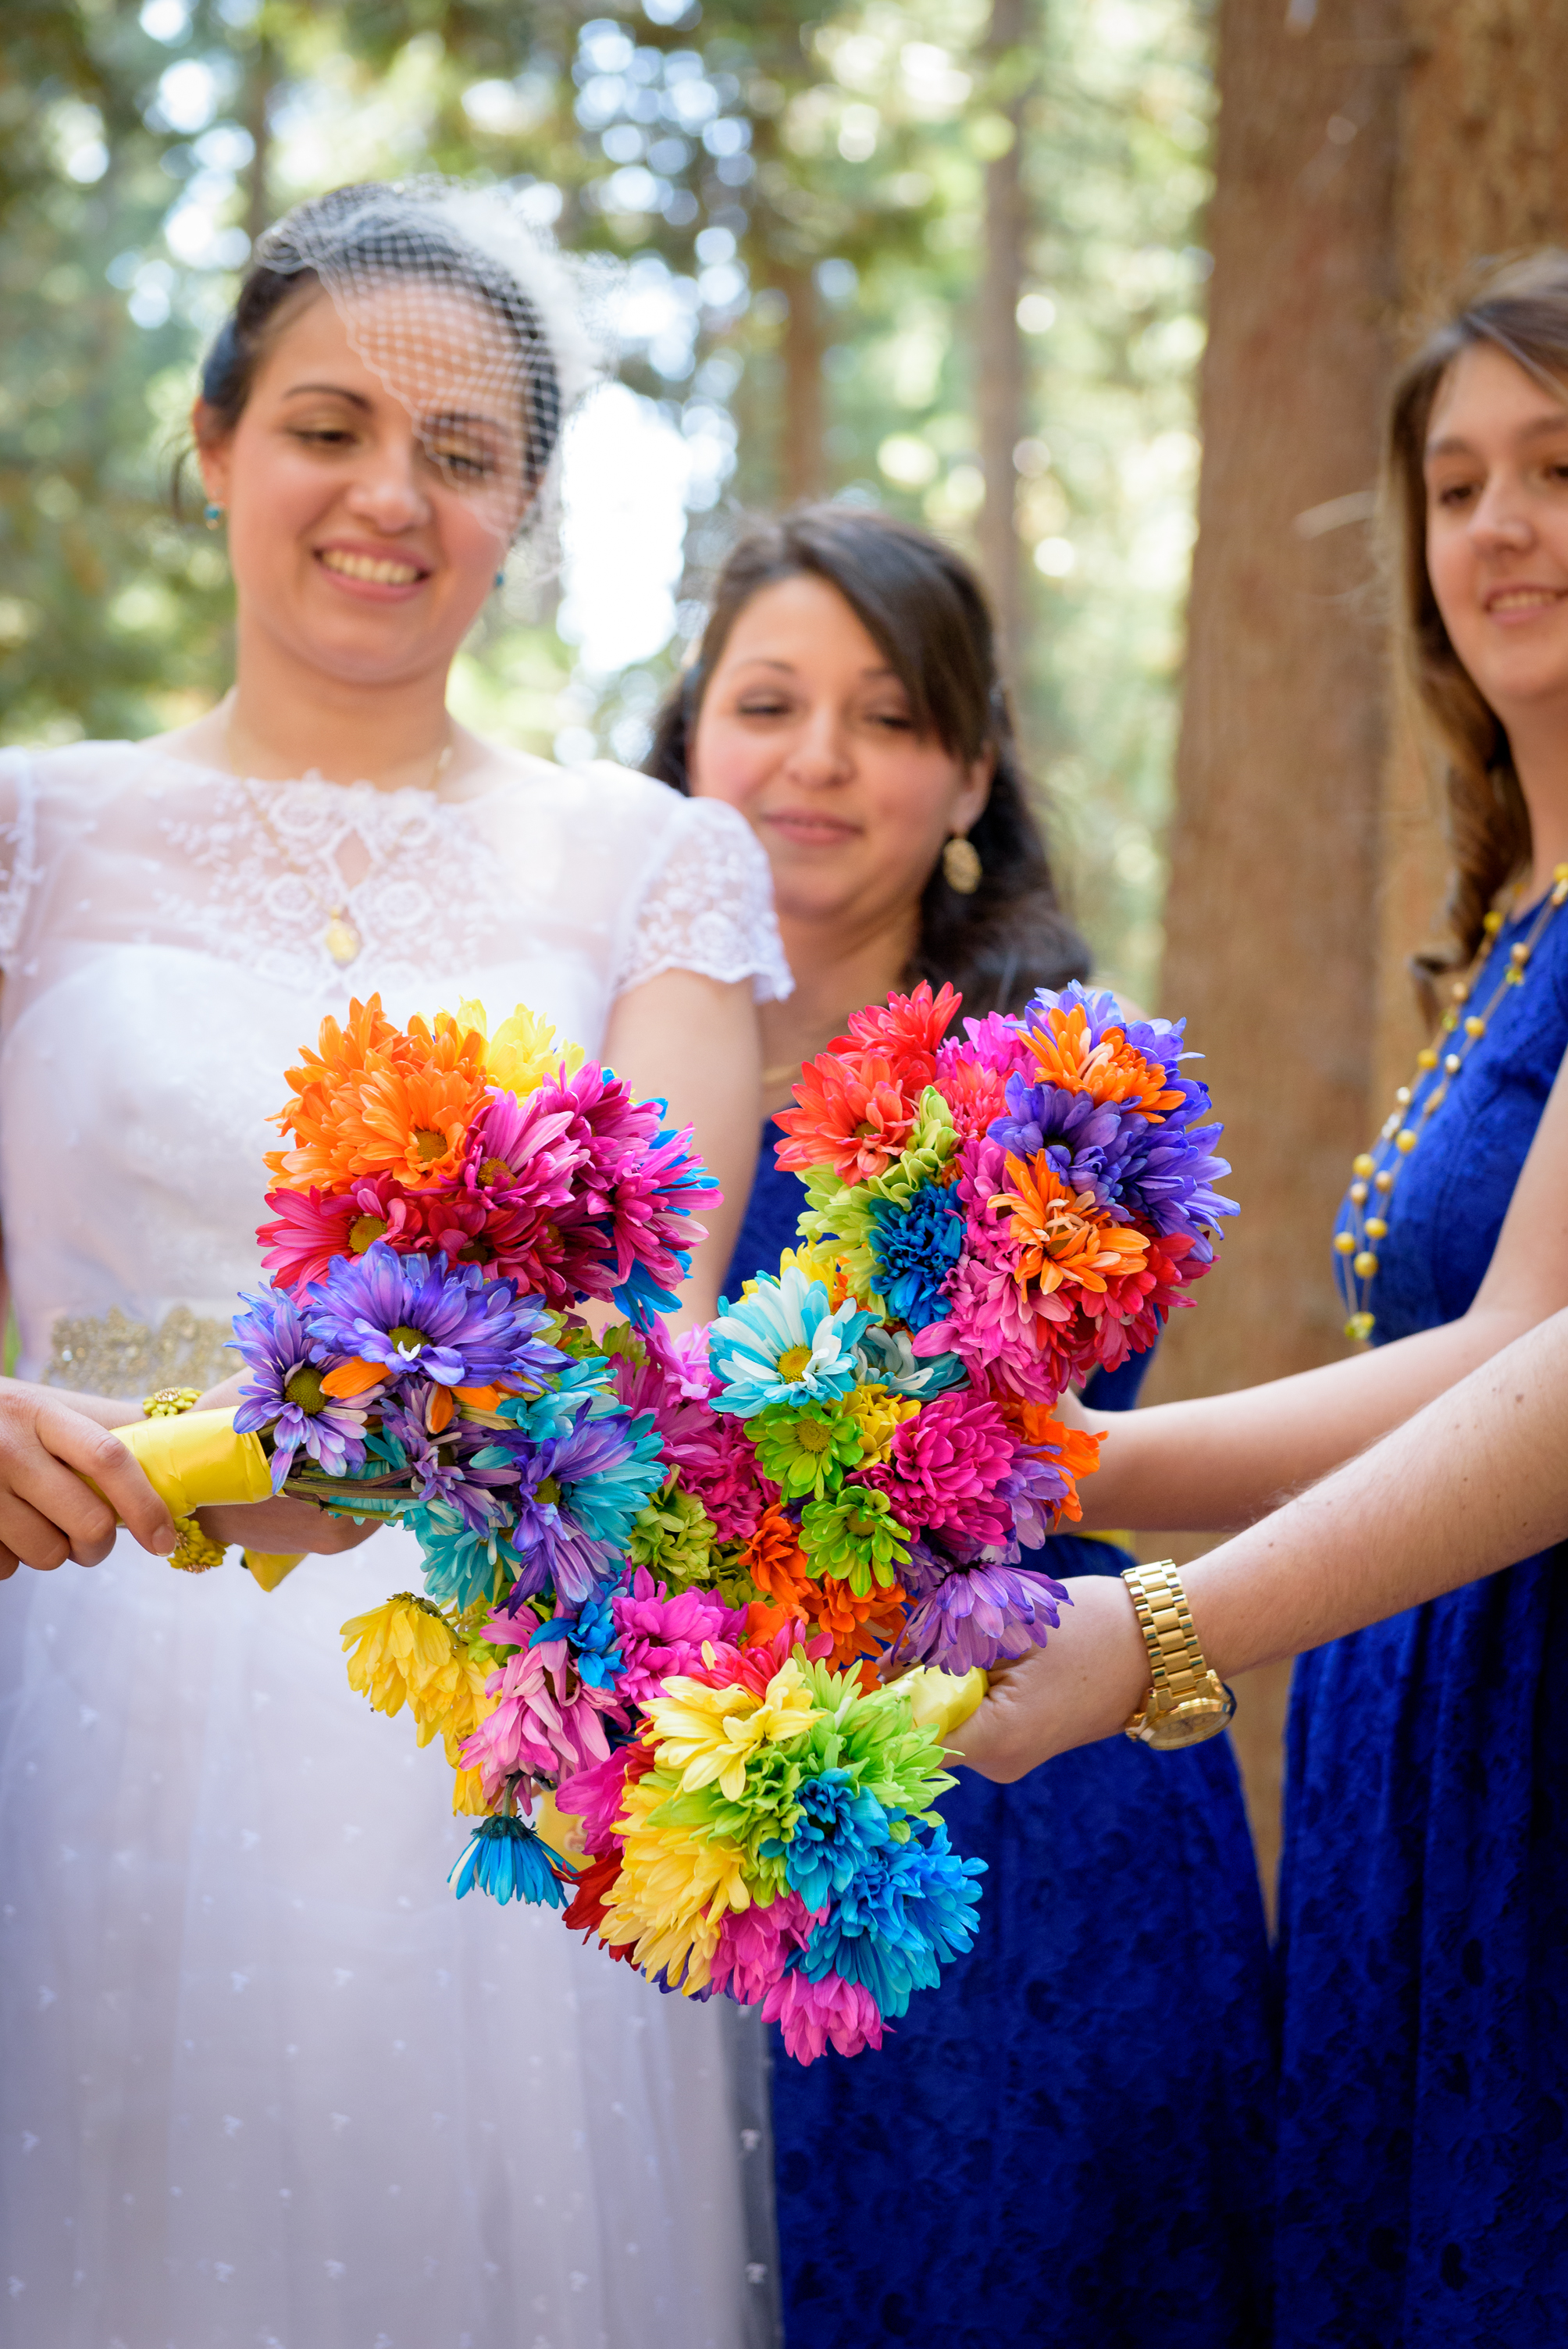 Erika and her bridesmaids make a heart out of bouquets